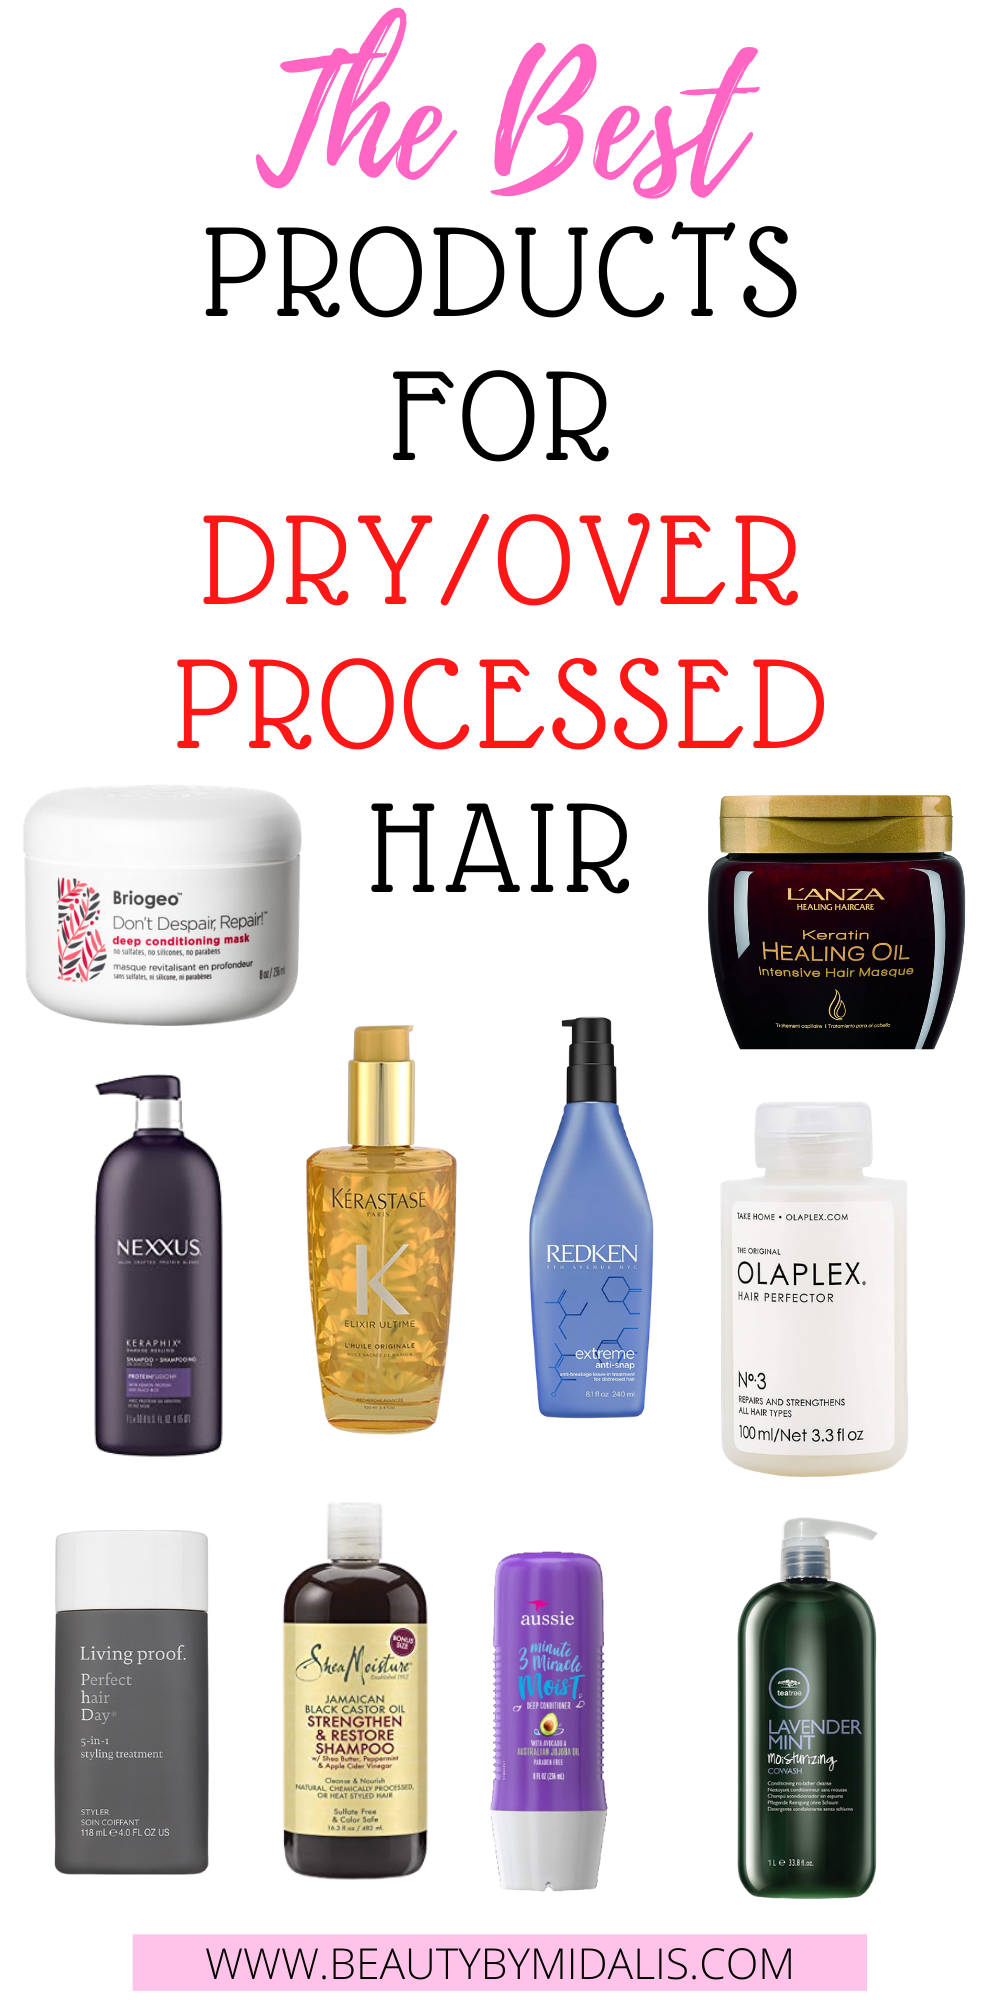 THE BEST PRODUCTS FOR DRY/OVER PROCESSED HAIR in 2020